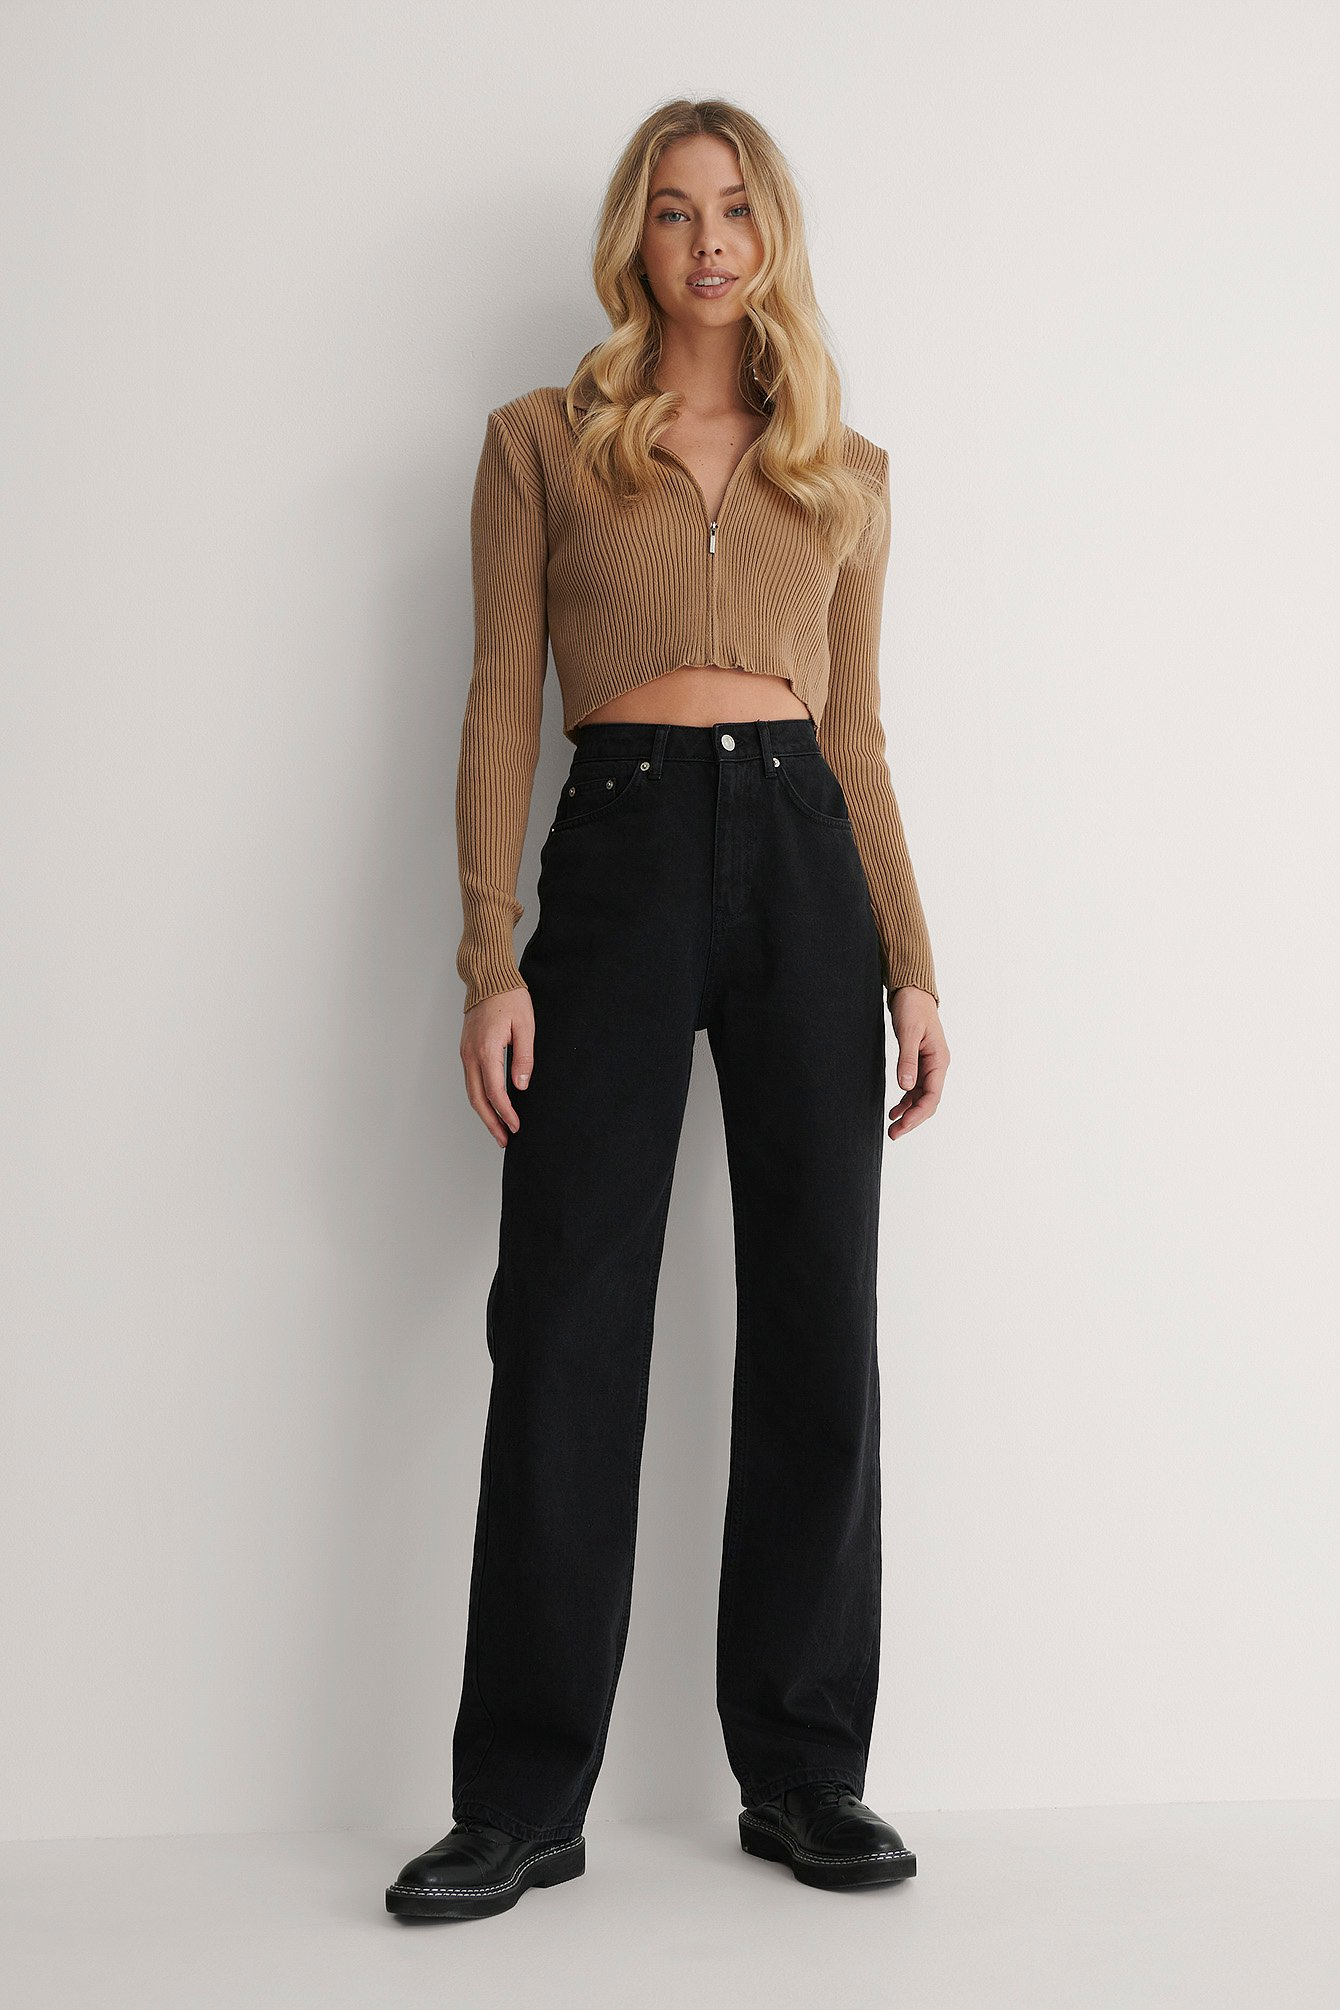 Black Wide Leg High Waisted Denim